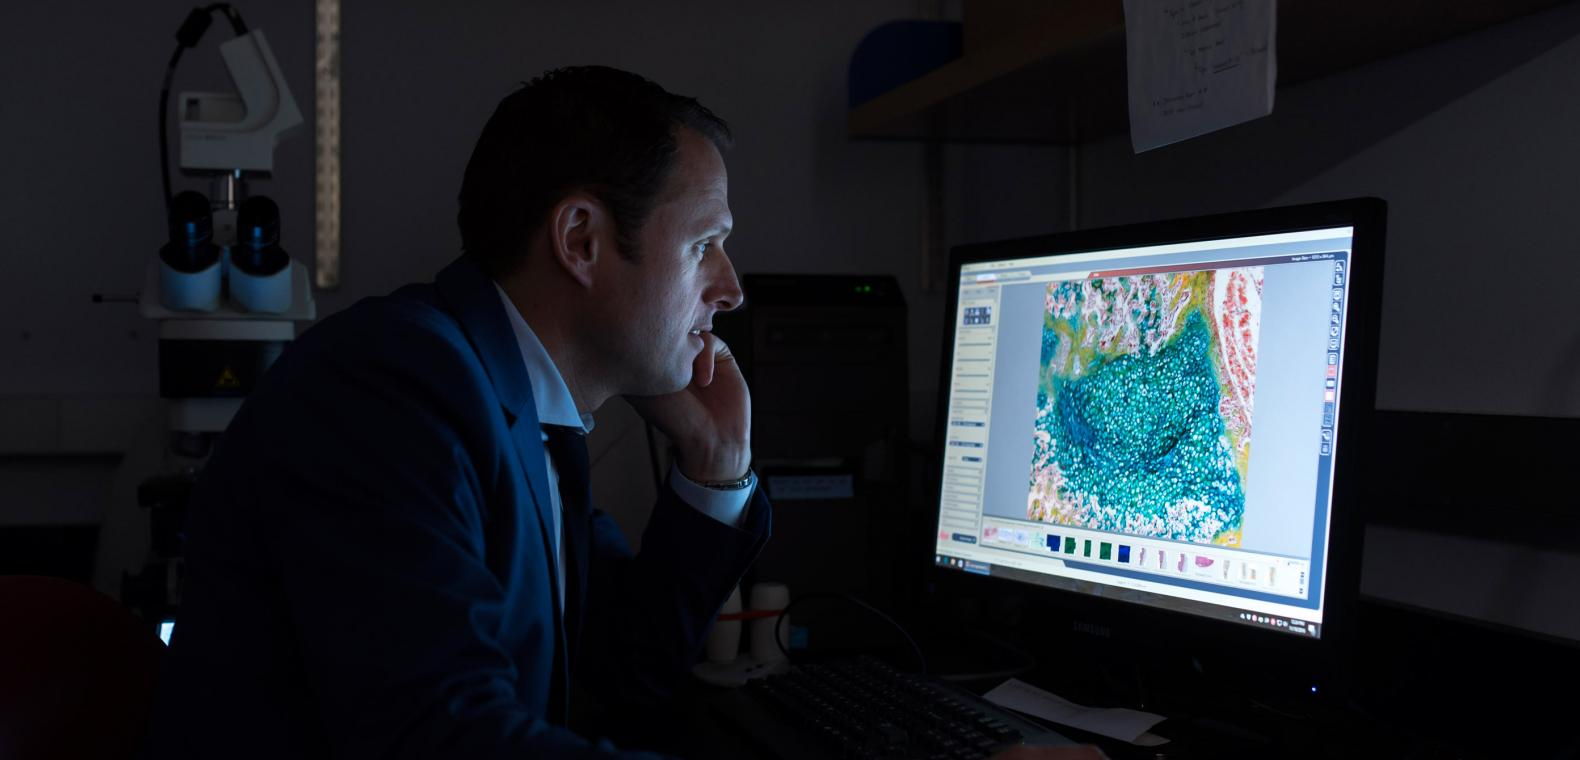 Researcher Looks at Cellular Images on Computer